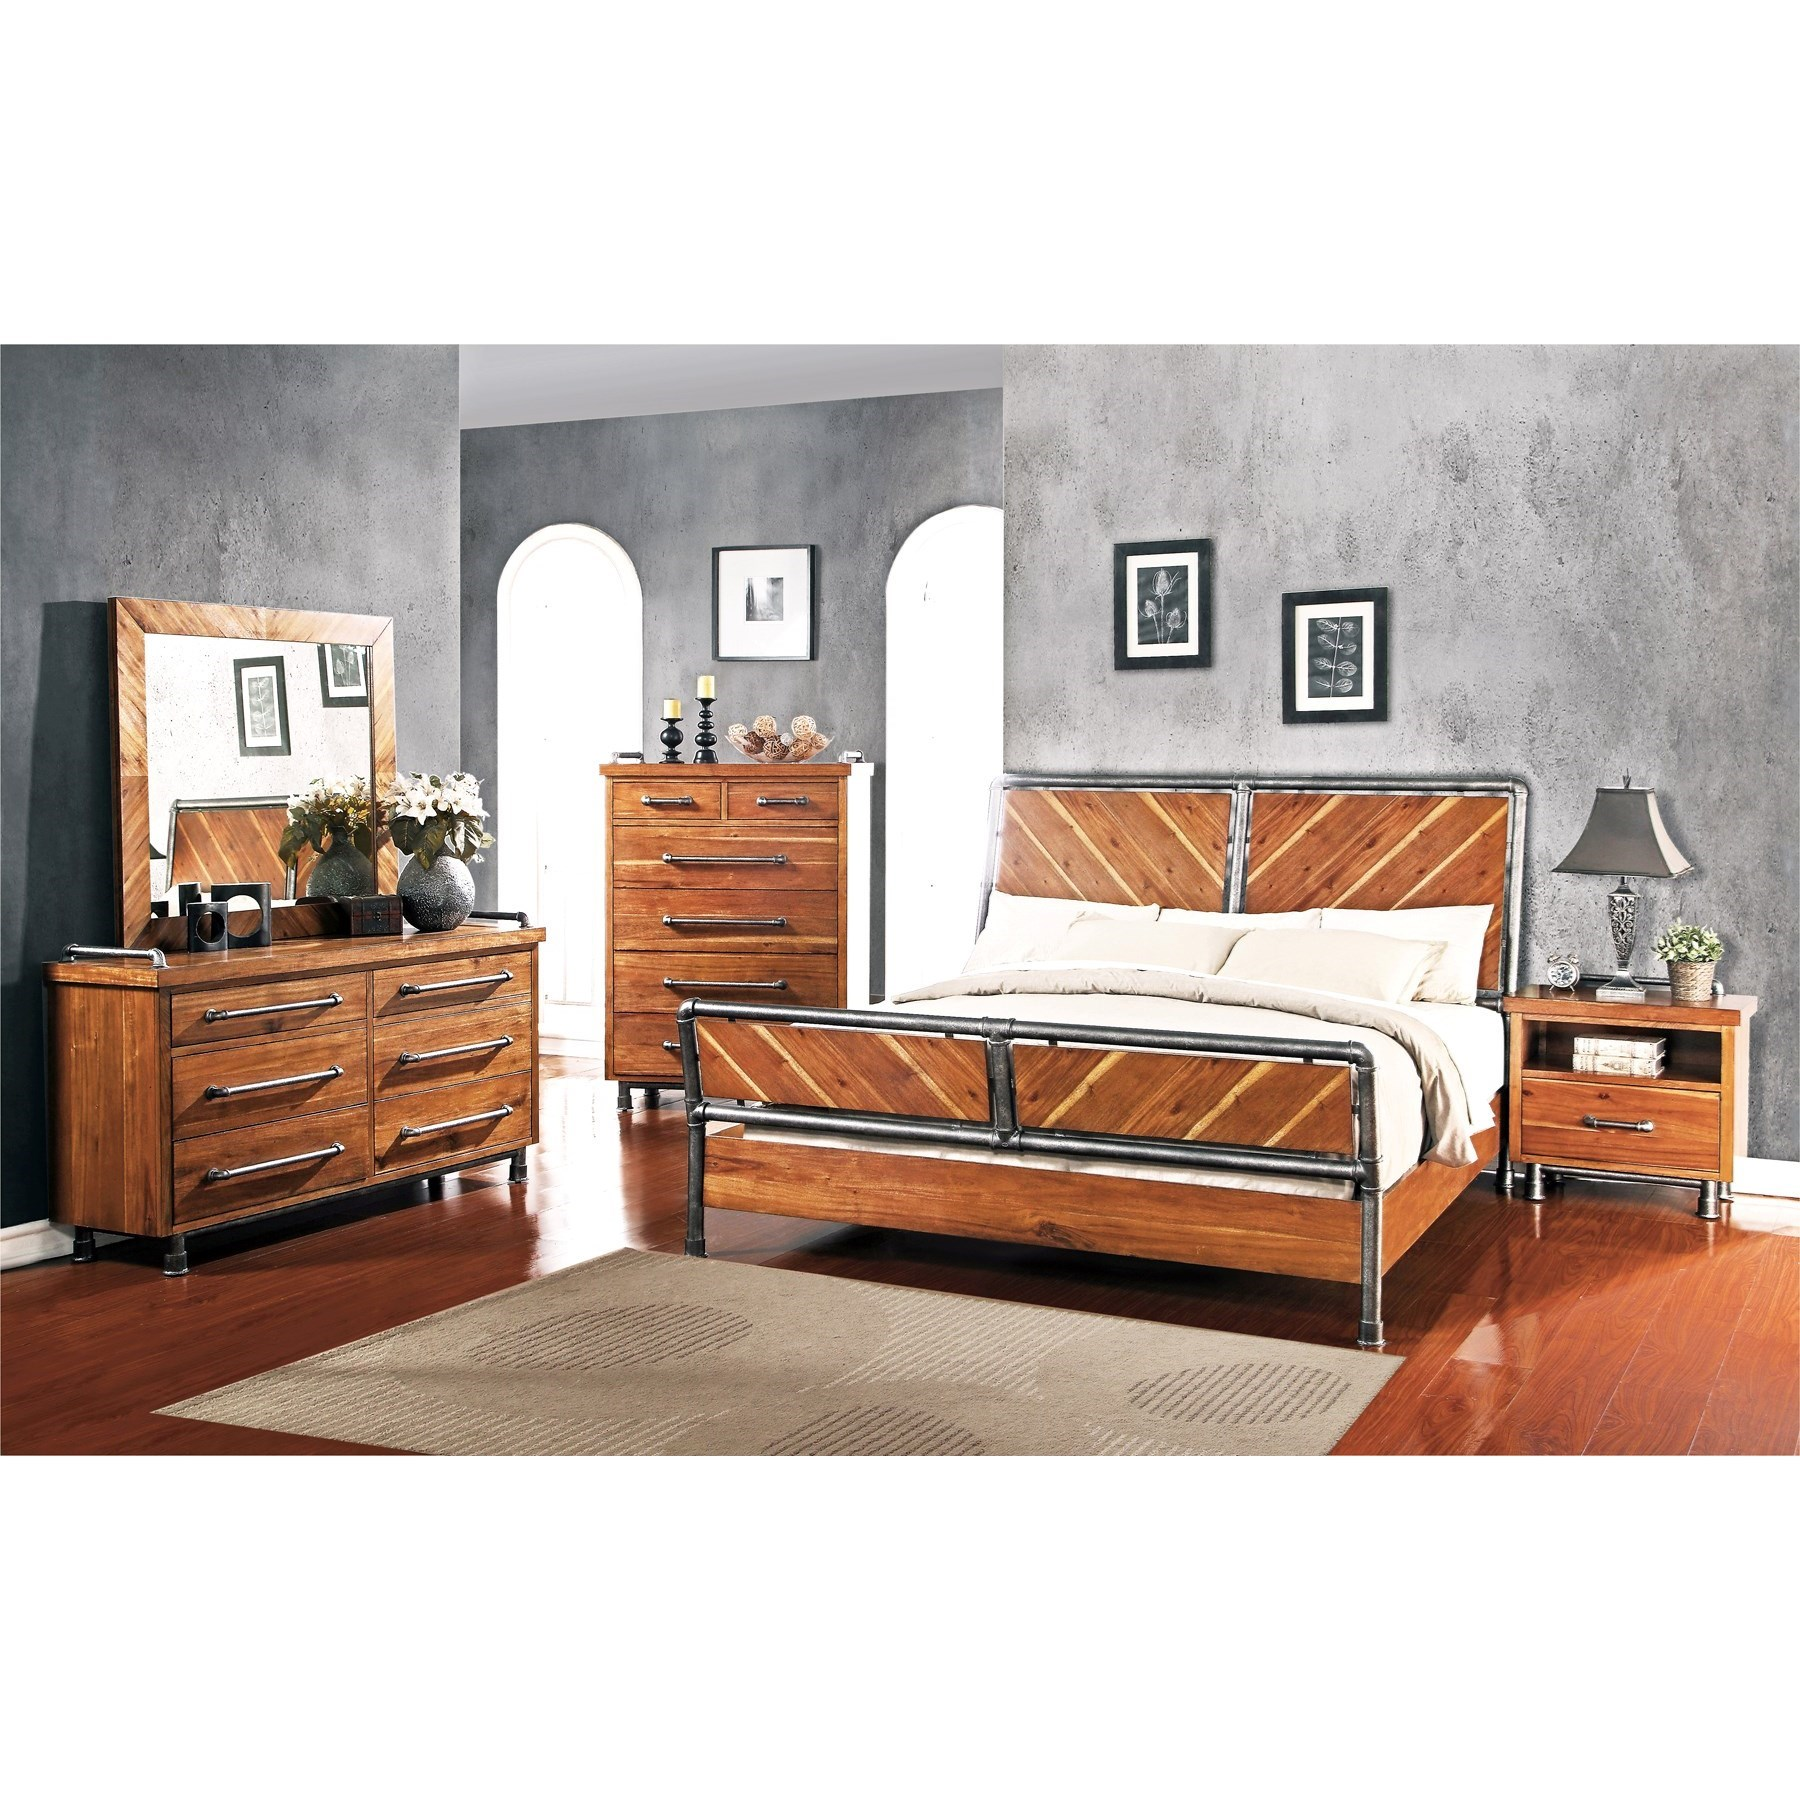 Steampunk Furniture For Sale Legends Furniture Steampunk Collection Queen Bedroom Group